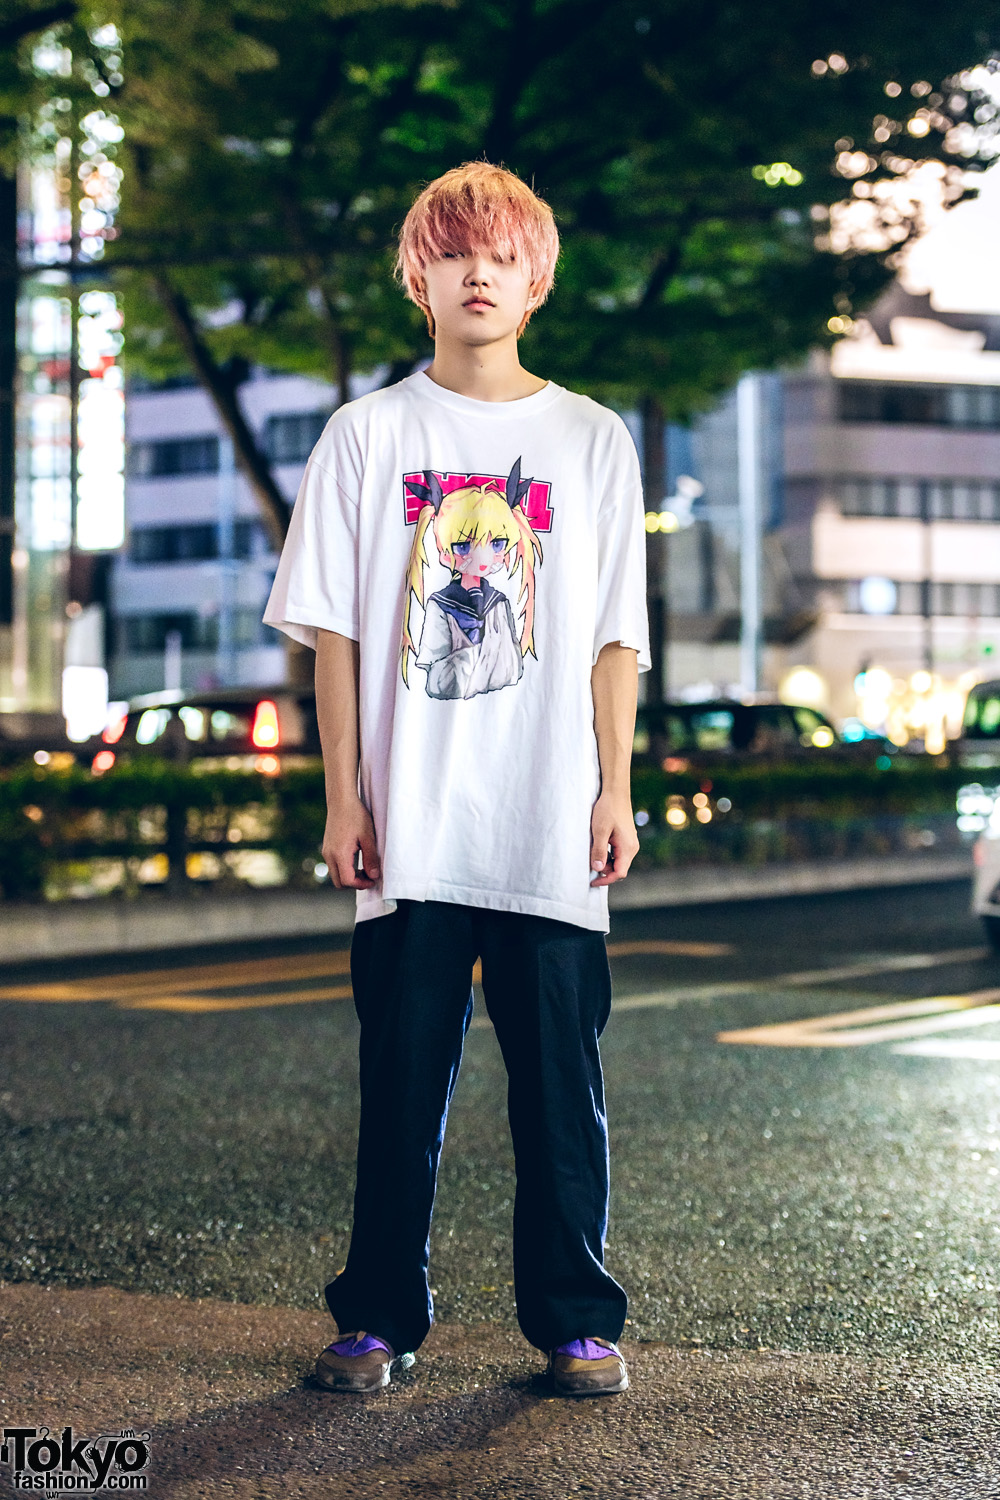 quality design 7242c a97e7 Pink-Haired Harajuku Guy in Anime T-Shirt, Y s Pants   Nike Air Huarache  Colorblock Sneakers